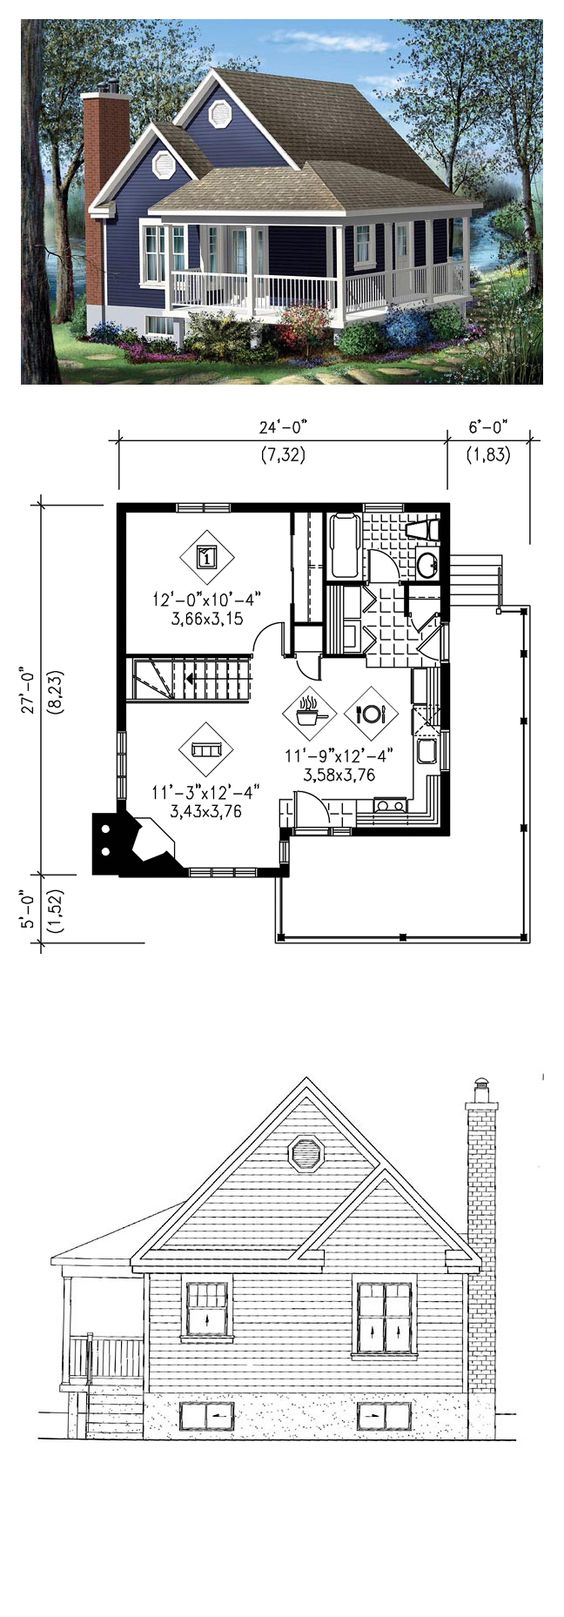 Large lot house plans house design plans for House plans for large lots